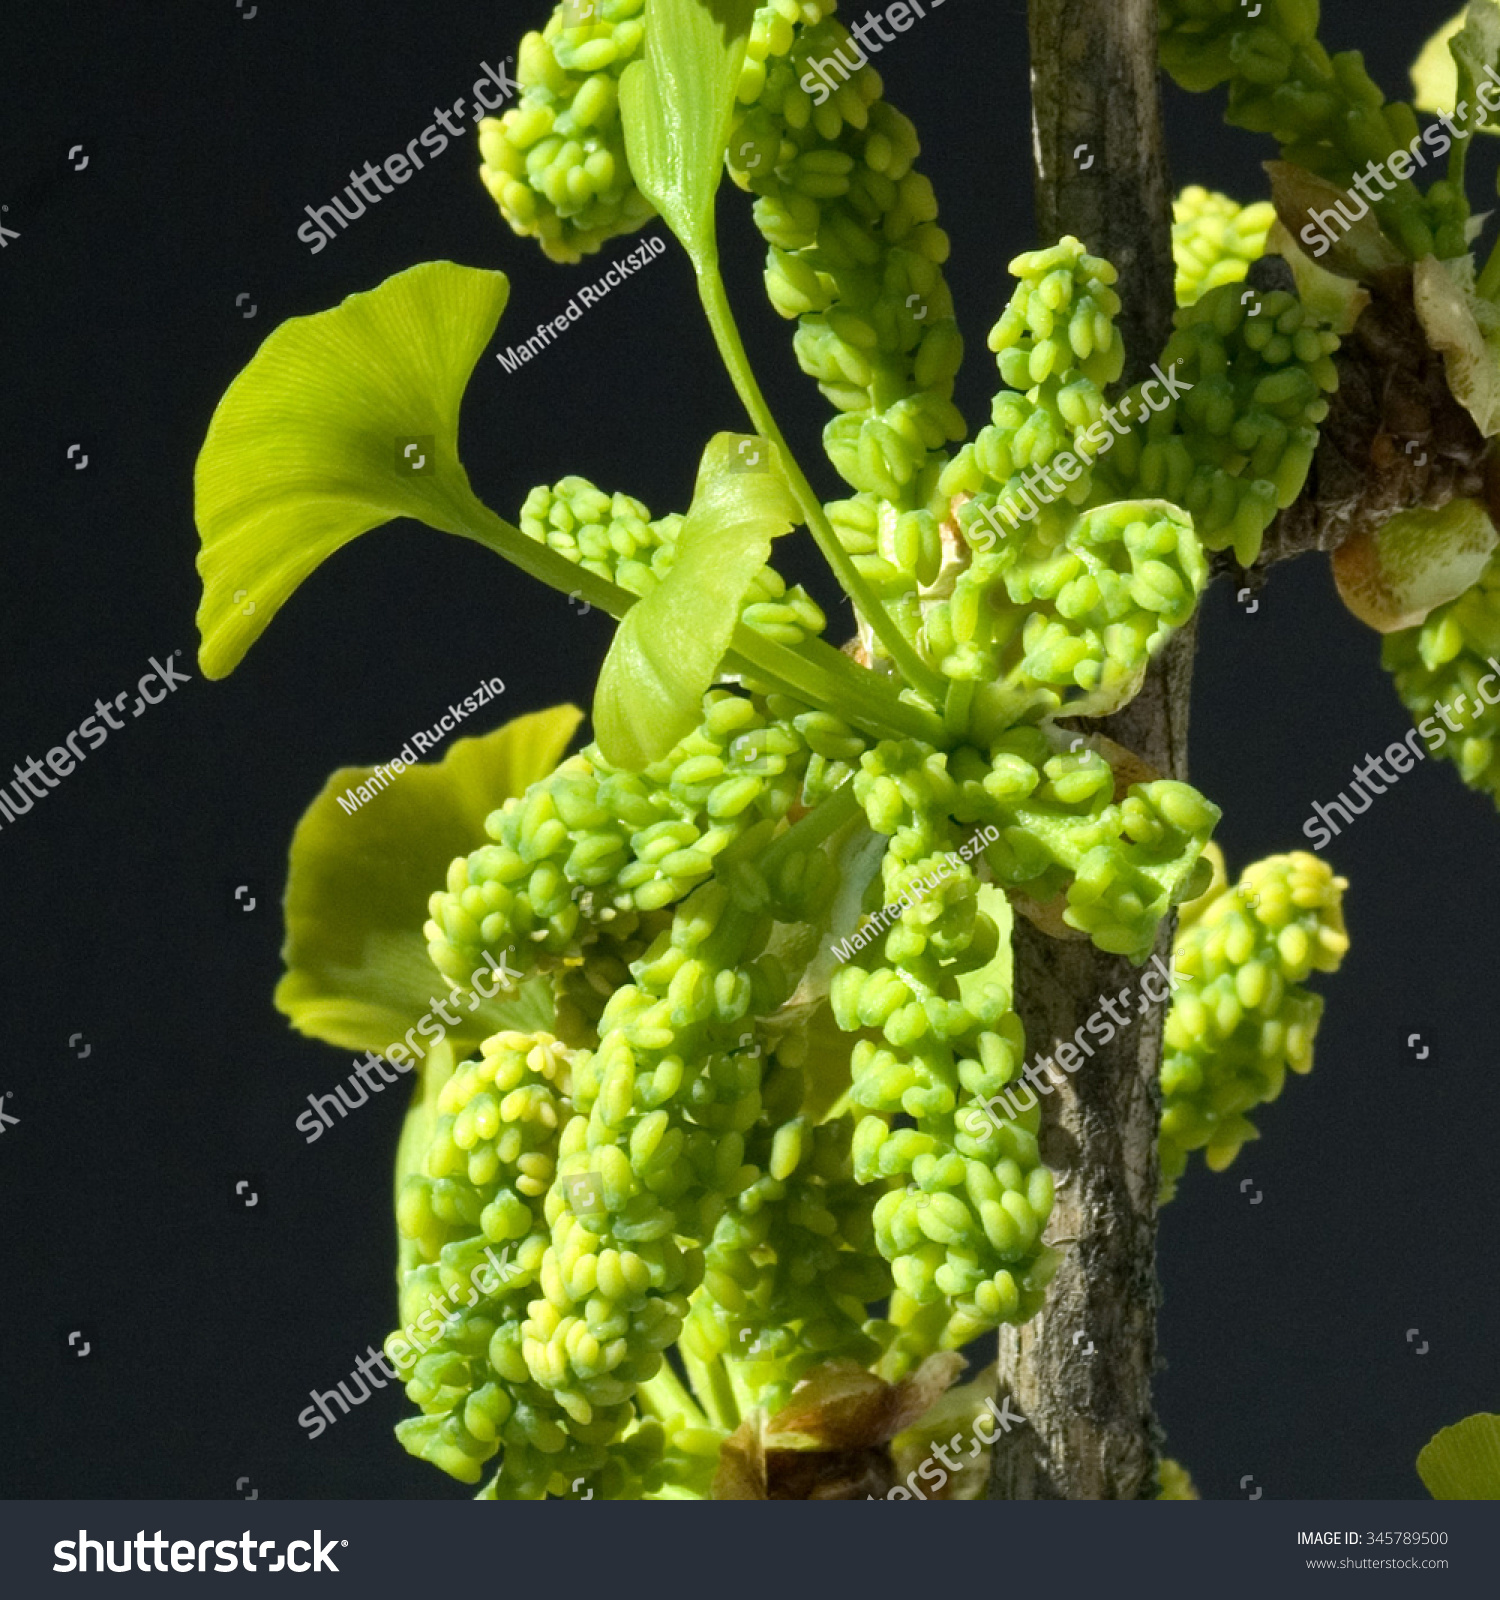 Ginkgo Biloba Gender Male Blossom Stock Photo 345789500 - Shutterstock